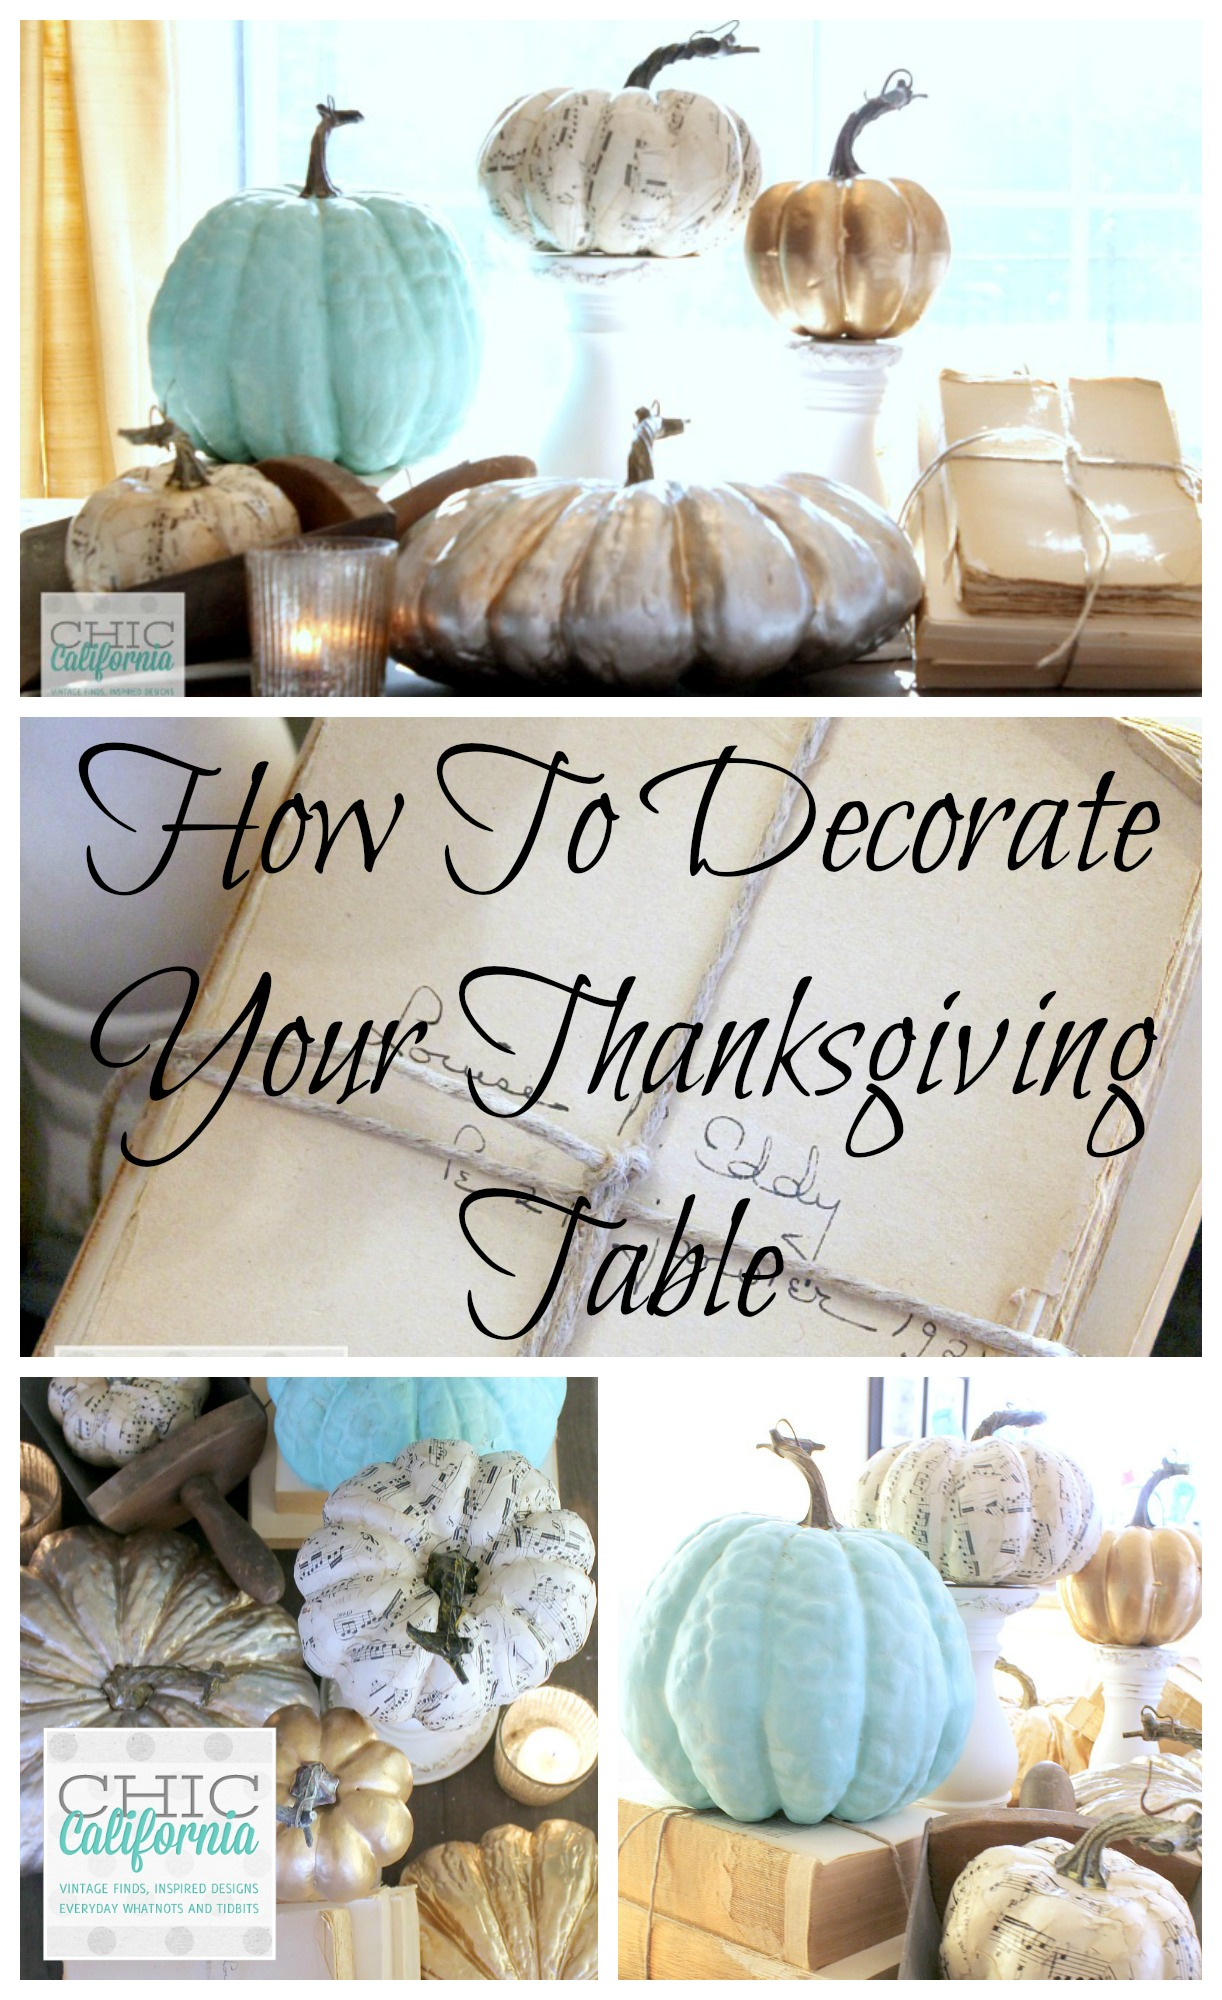 Tips on Decorating Your Table for Thanksgiving by Chic California